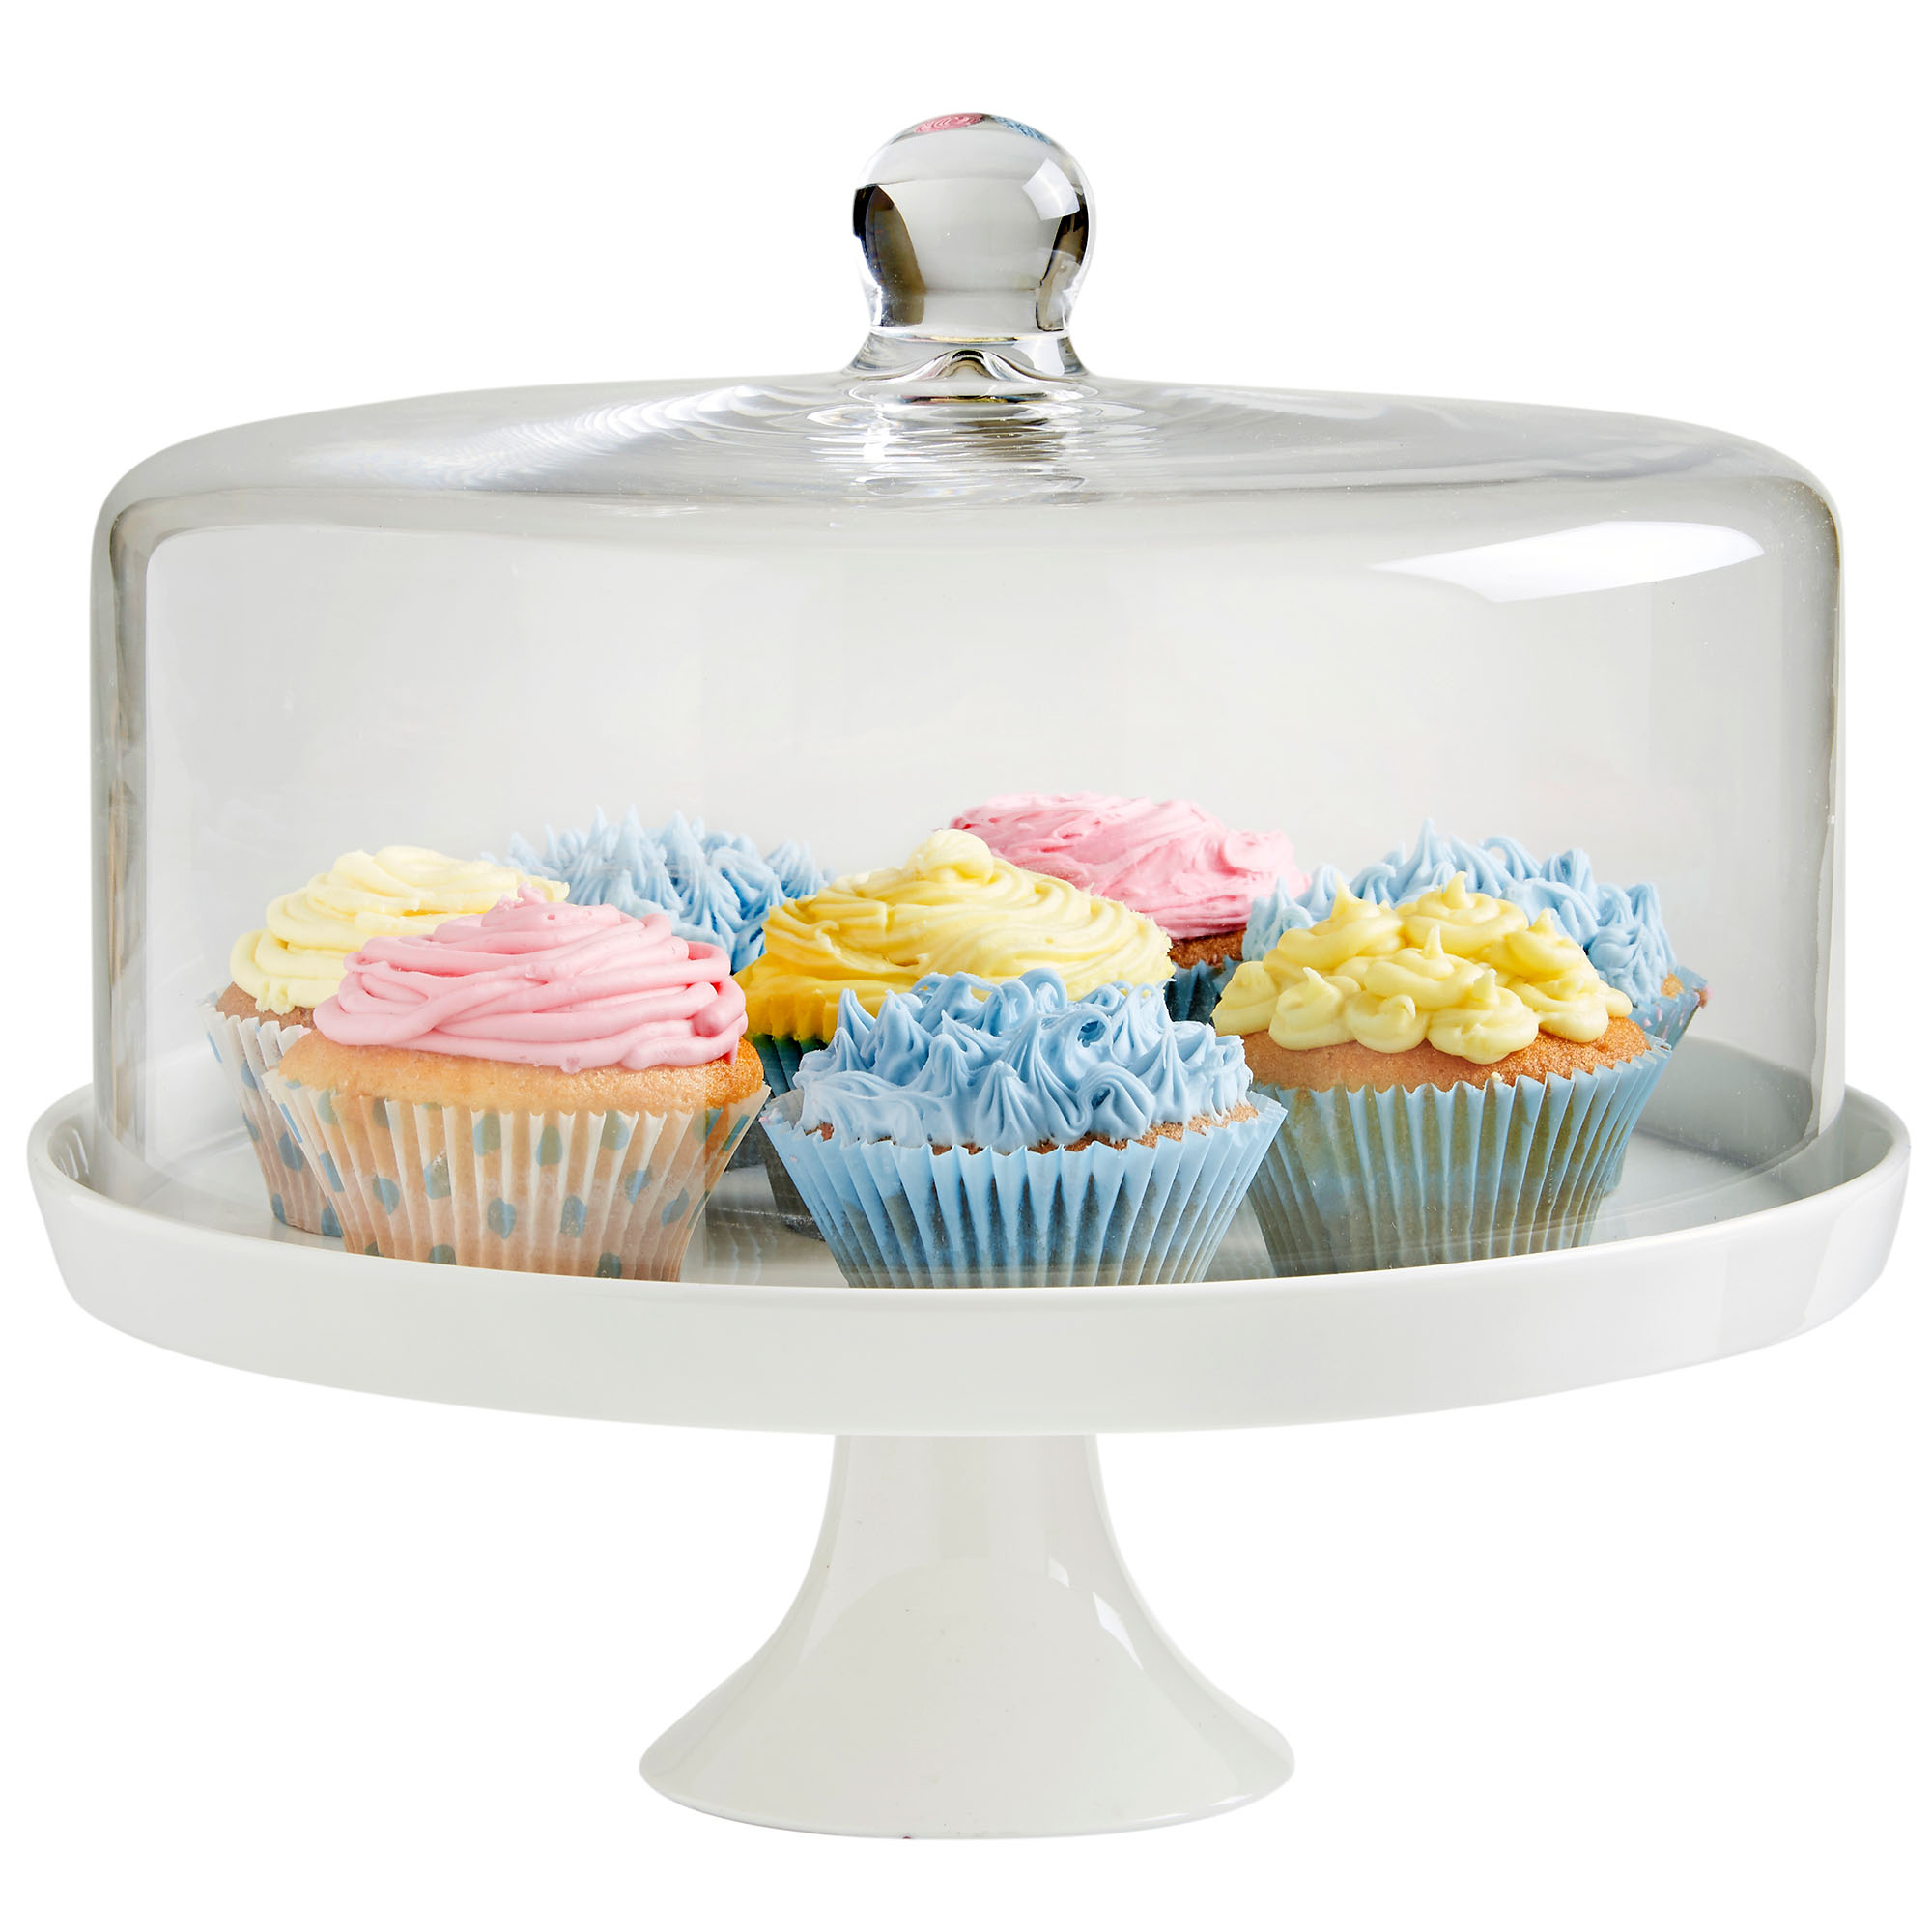 Vonshef 30cm Cake Cupcake White Ceramic Display Stand With